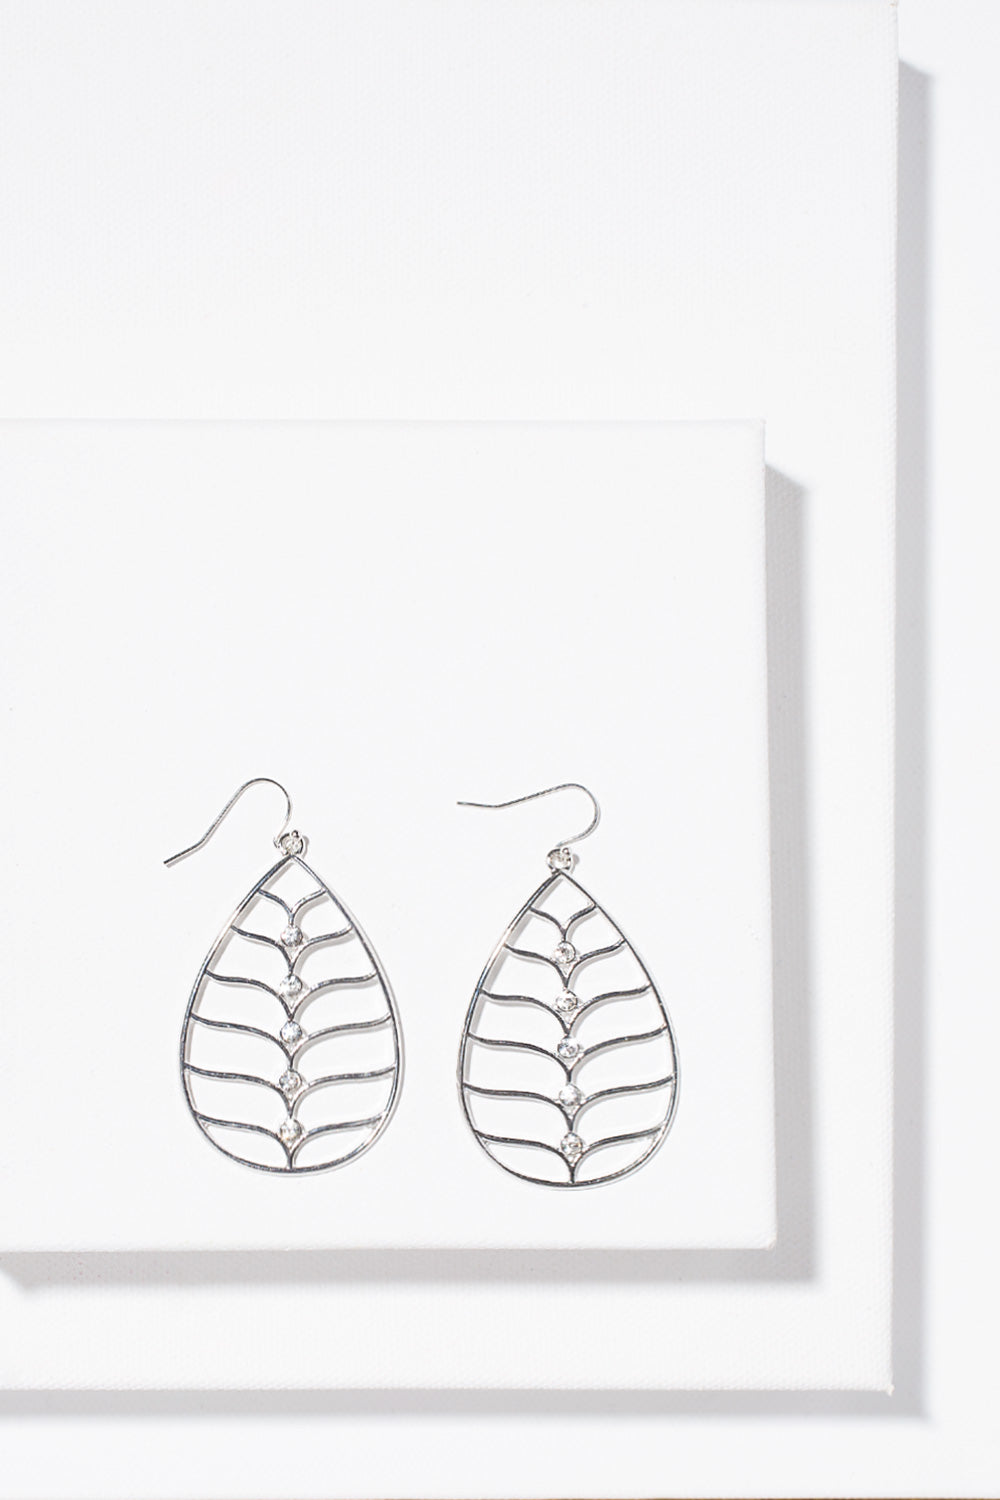 Type 4 Aligned Earrings